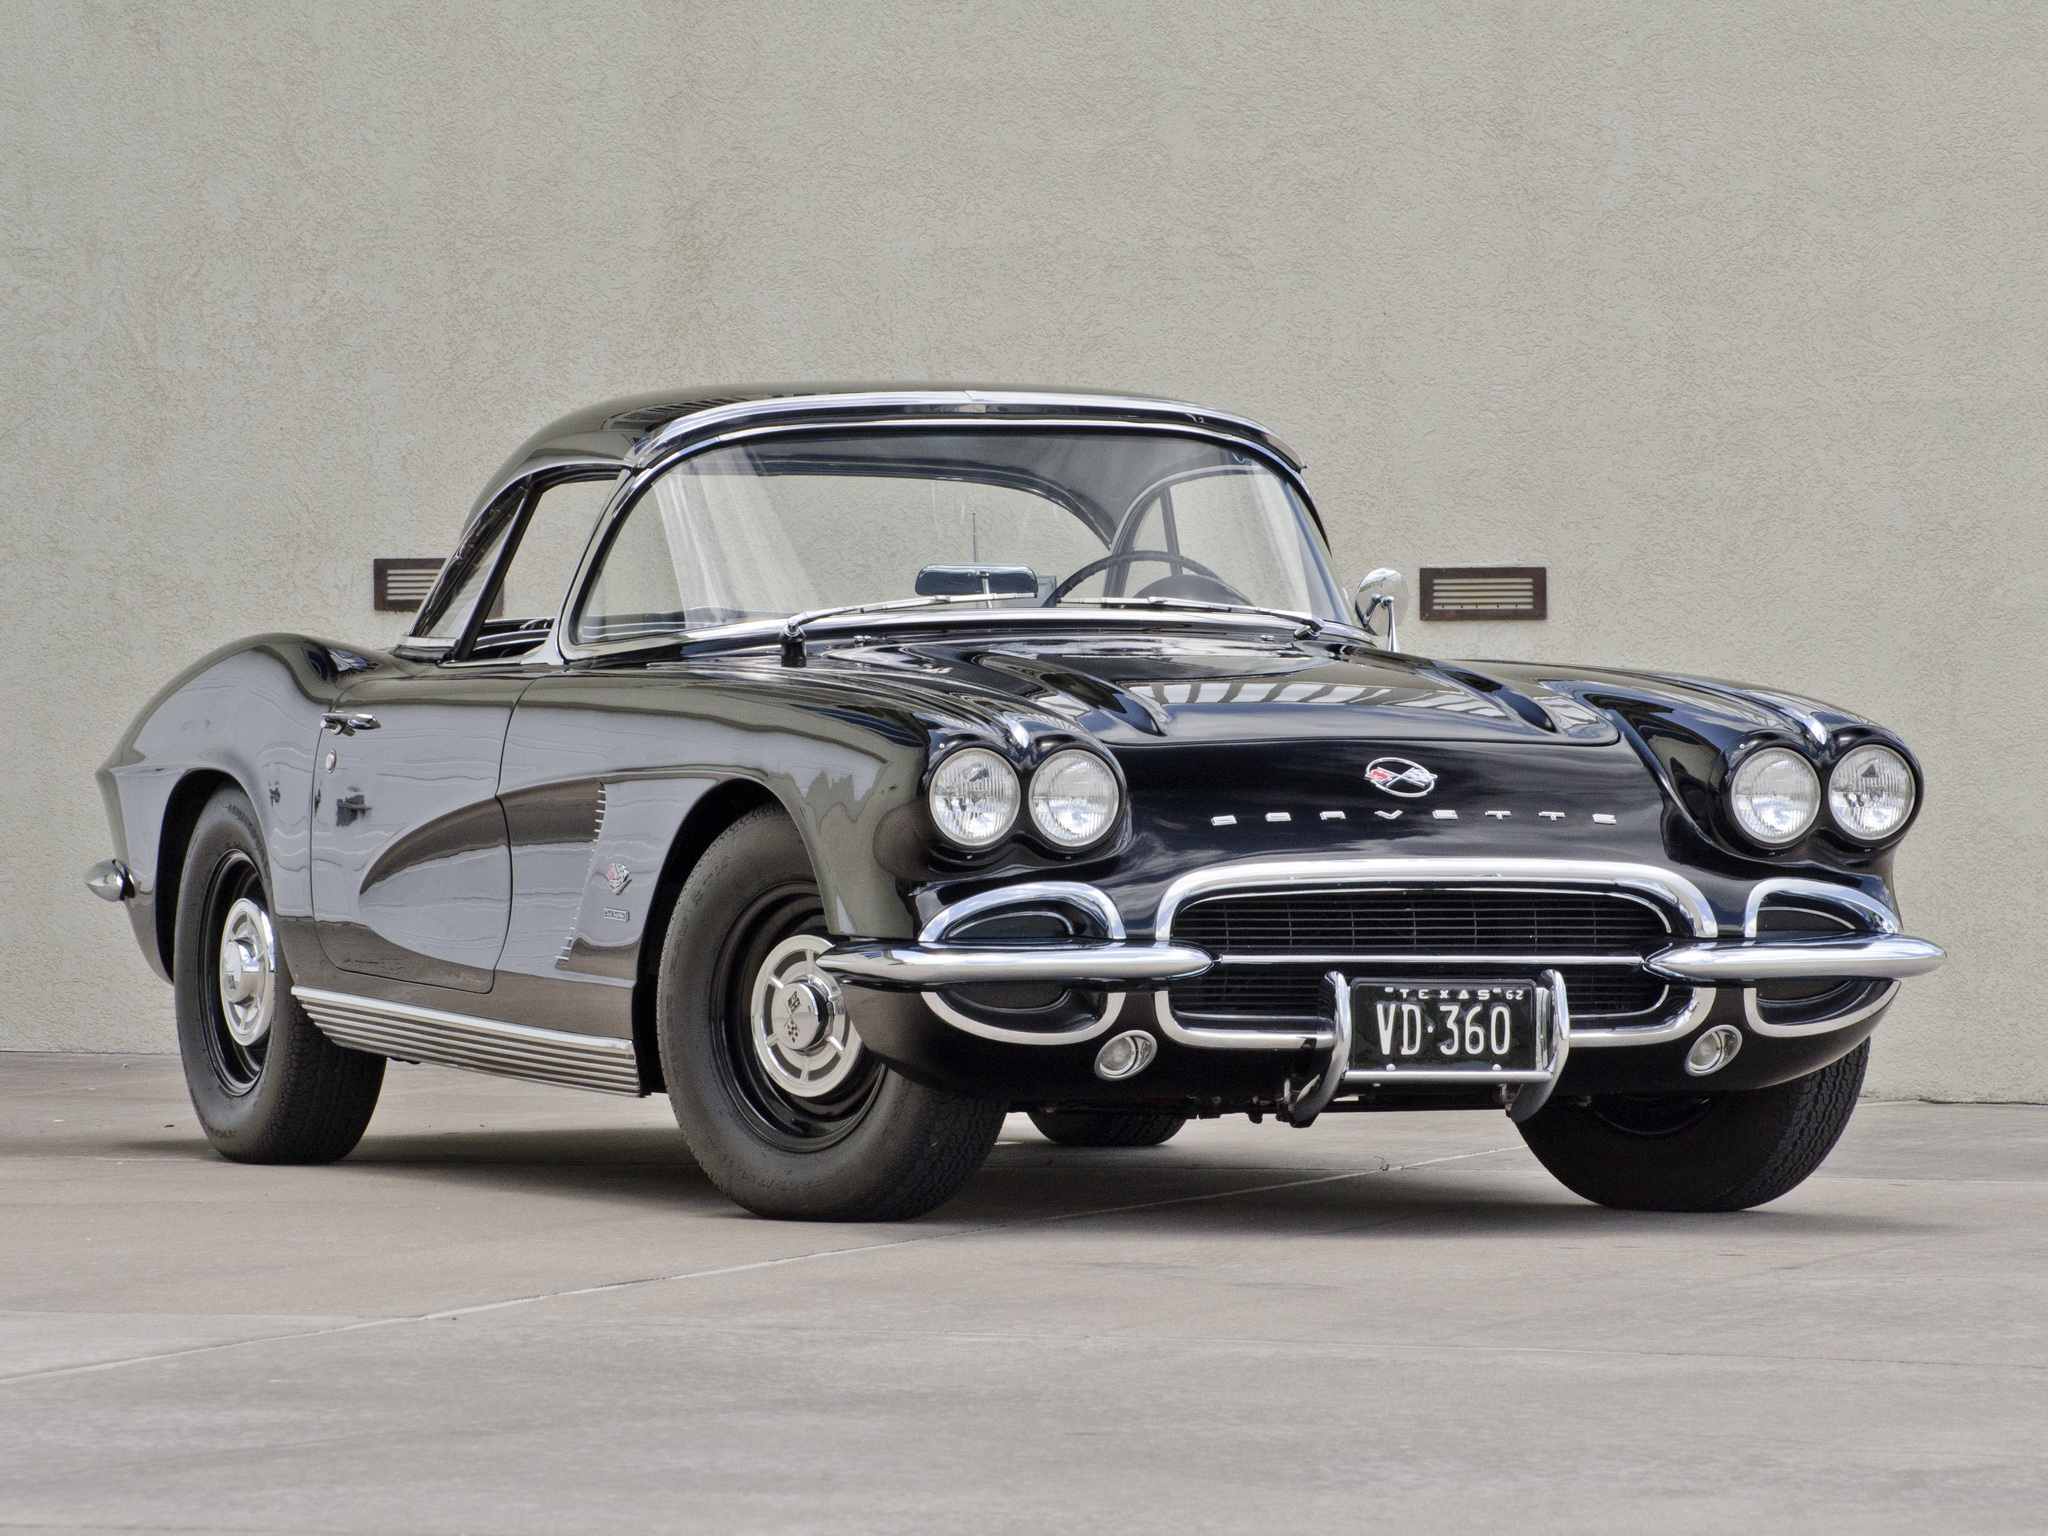 Cars That Start With A J >> 1962 Chevrolet Corvette C-1 Fuel Injection supercar supercars muscle classic j wallpaper ...